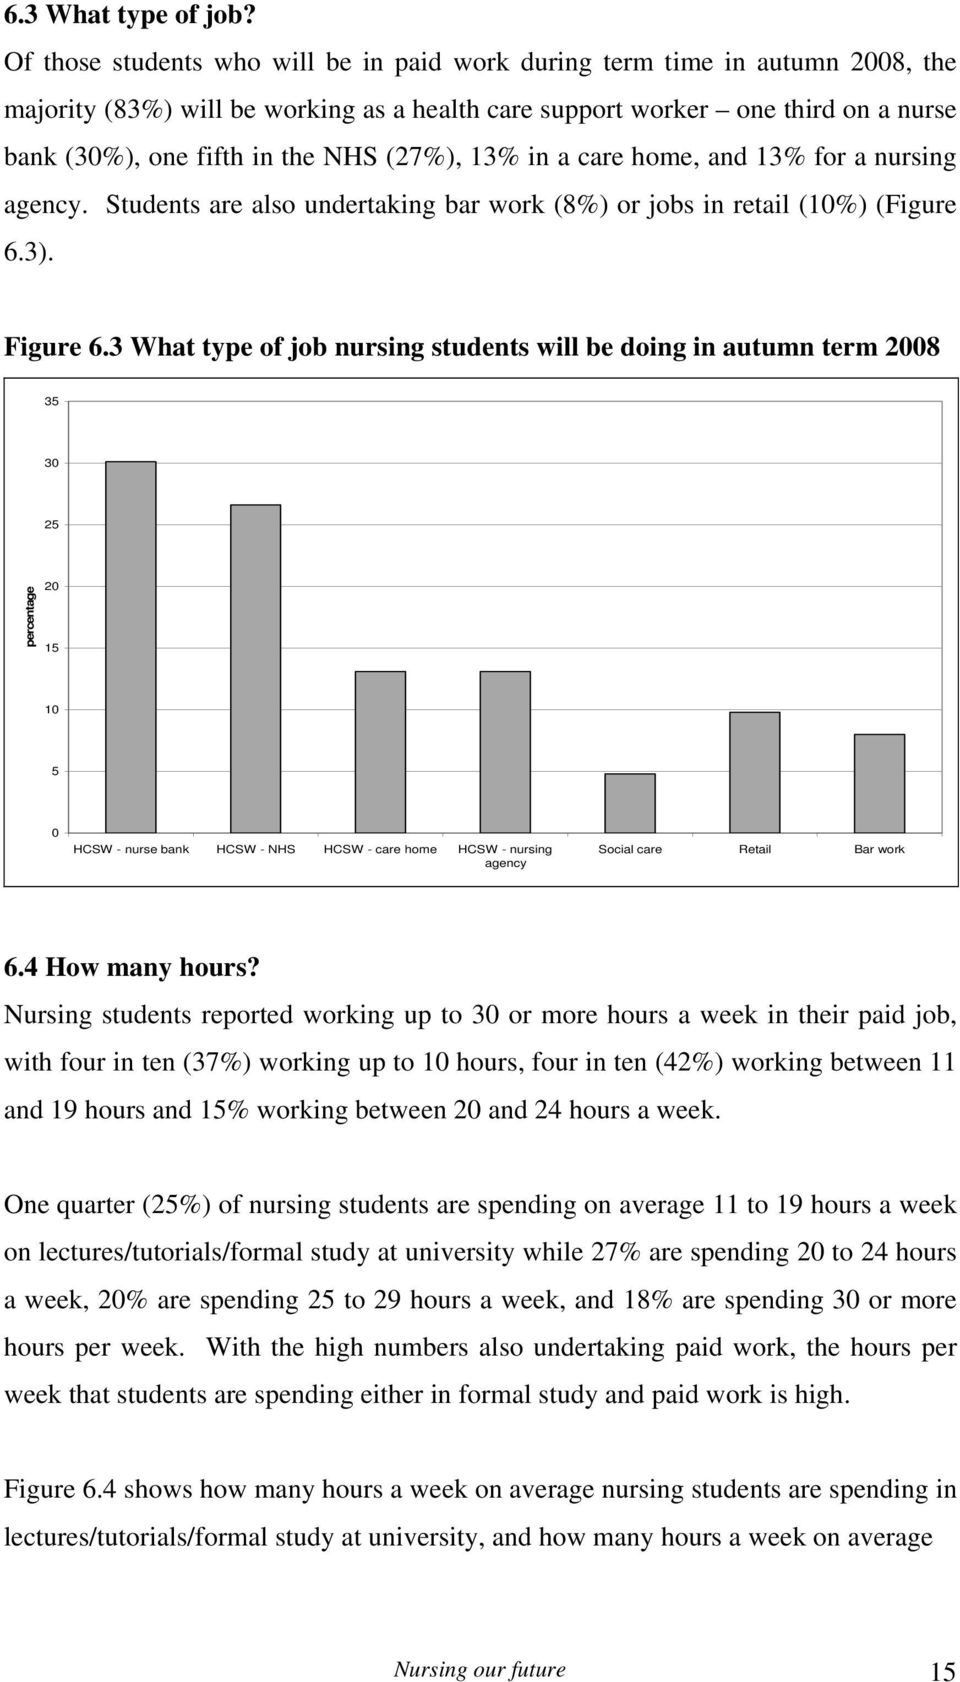 (27%), 13% in a care home, and 13% for a nursing agency. Students are also undertaking bar work (8%) or jobs in retail (10%) (Figure 6.3). Figure 6.